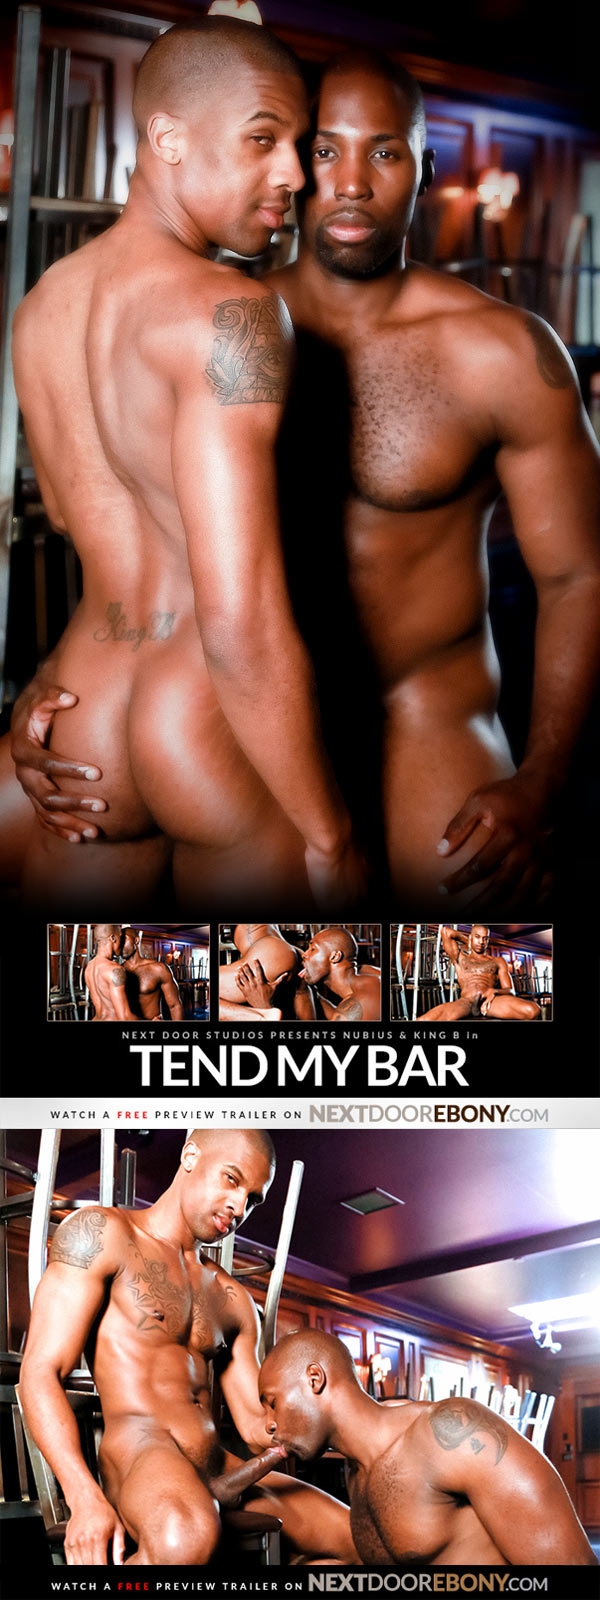 Tend My Bar (Nubius & King B) at NextDoorEbony